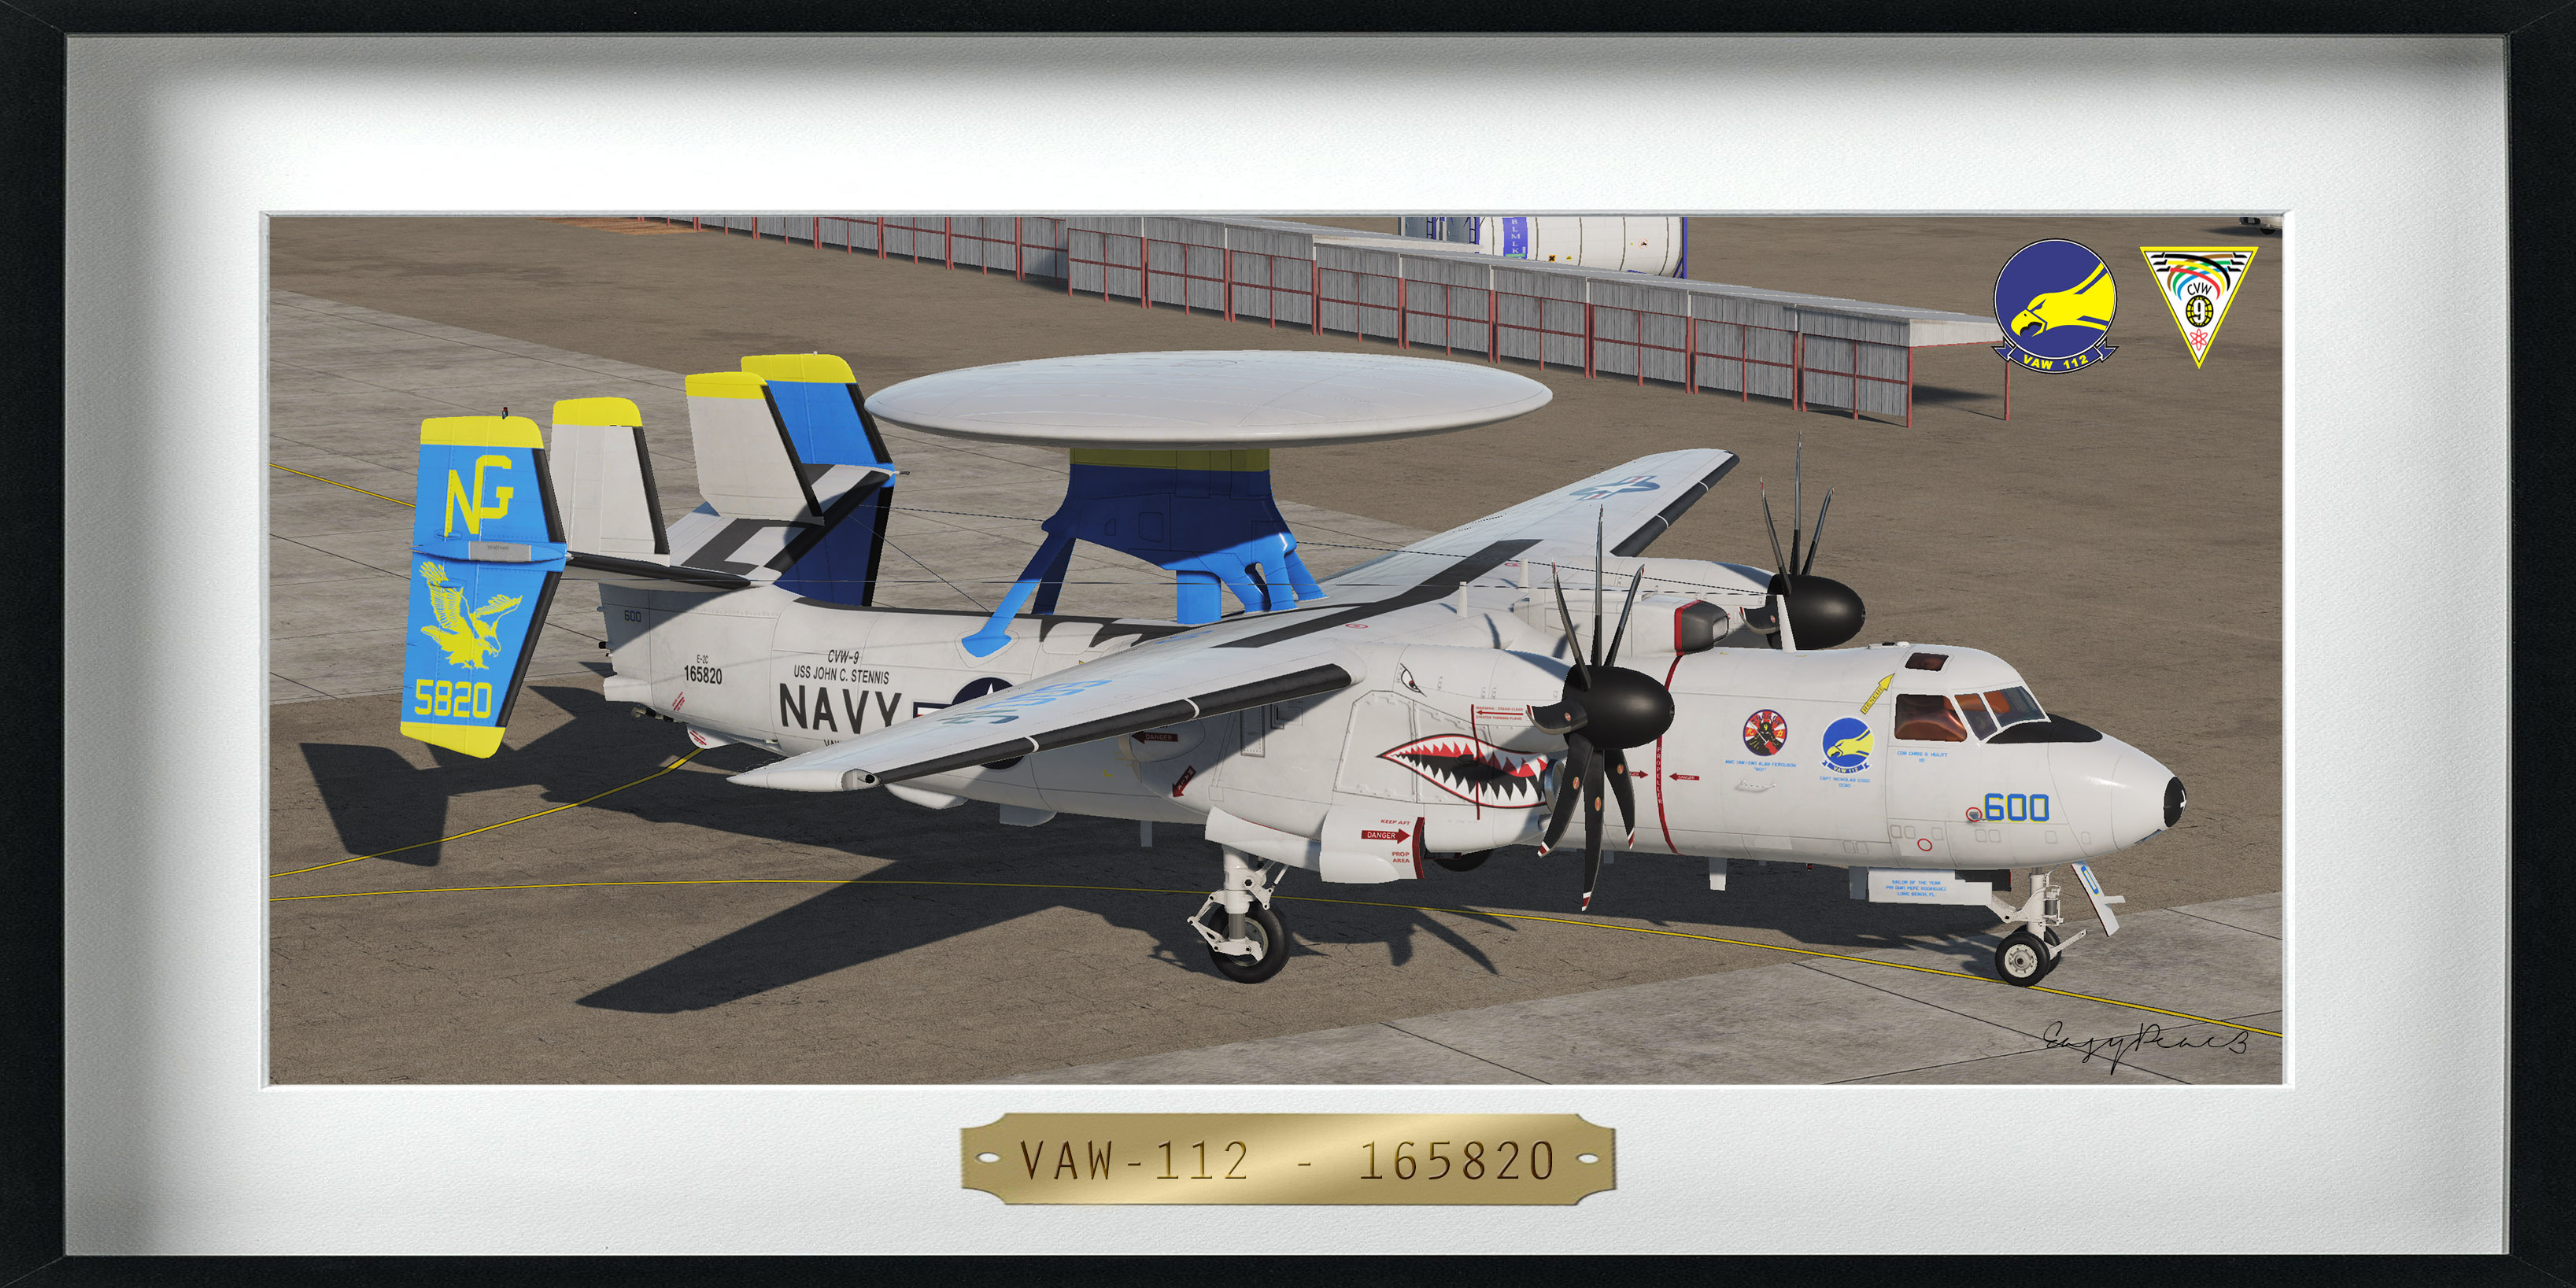 "VAW-112 - ""Golden Hawks"" - 165820 (4K)"